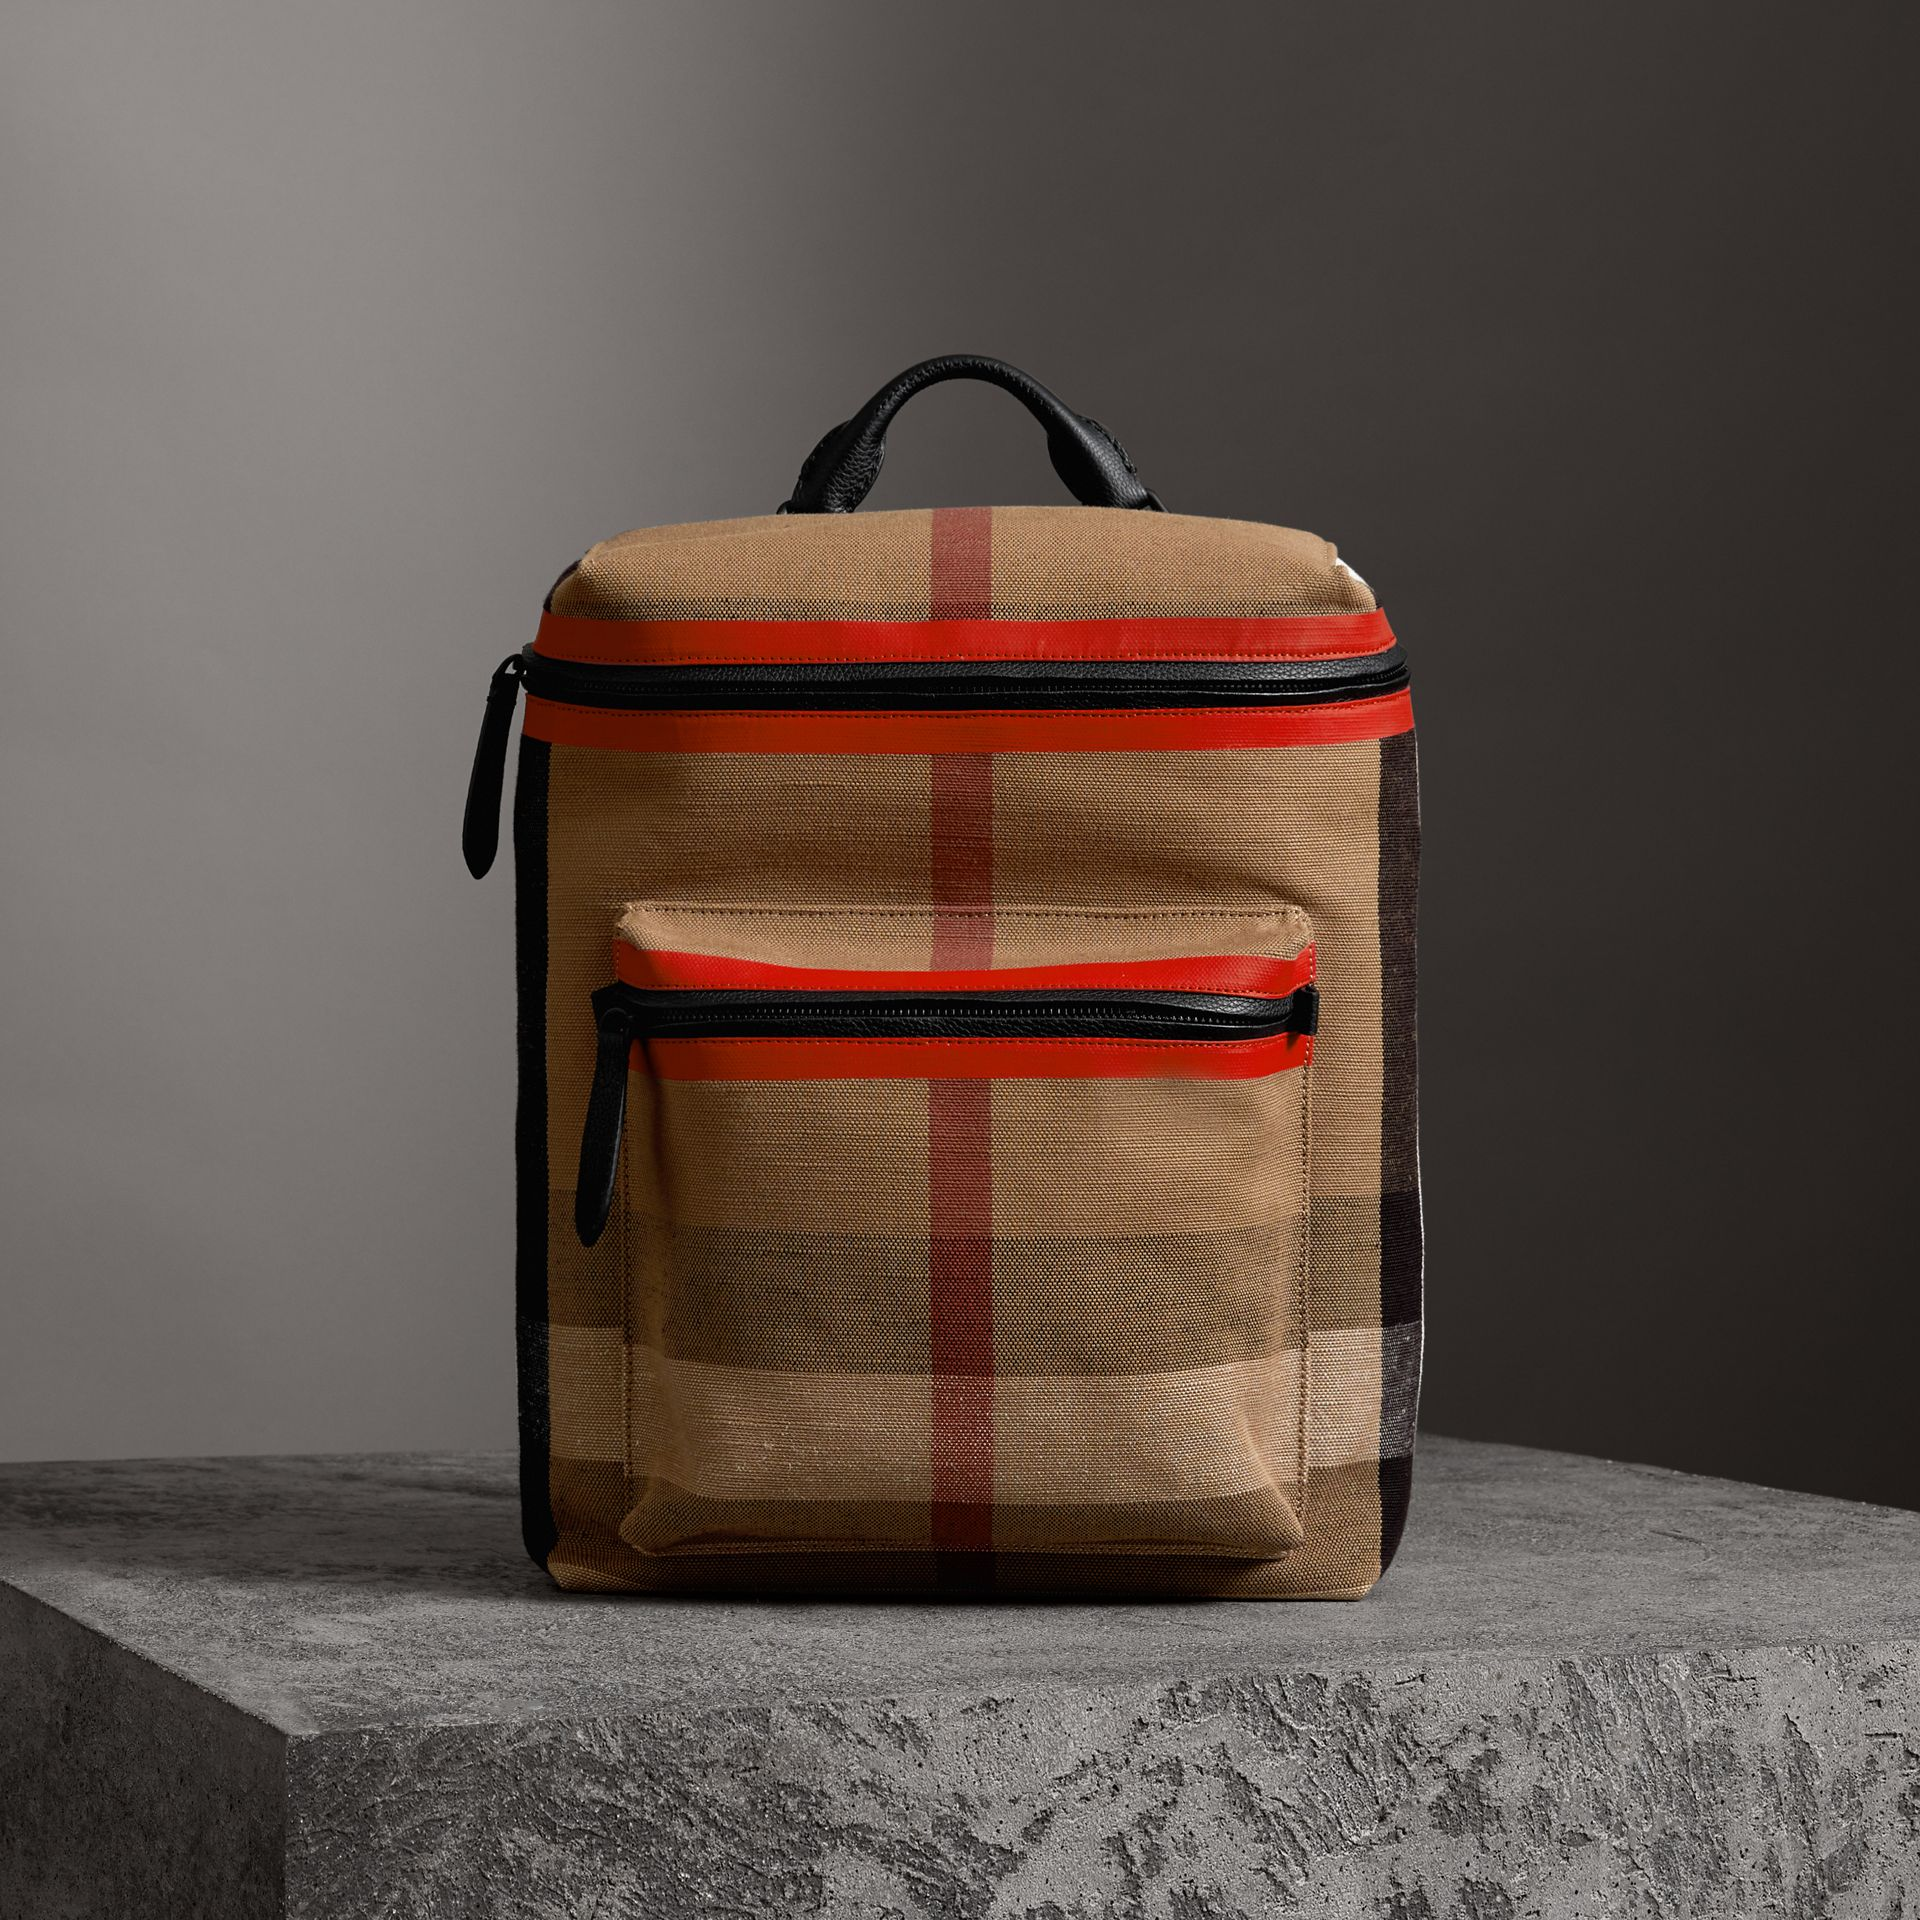 Zip-top Leather Trim Canvas Check Backpack in Military Red/camel - Men | Burberry Canada - gallery image 0